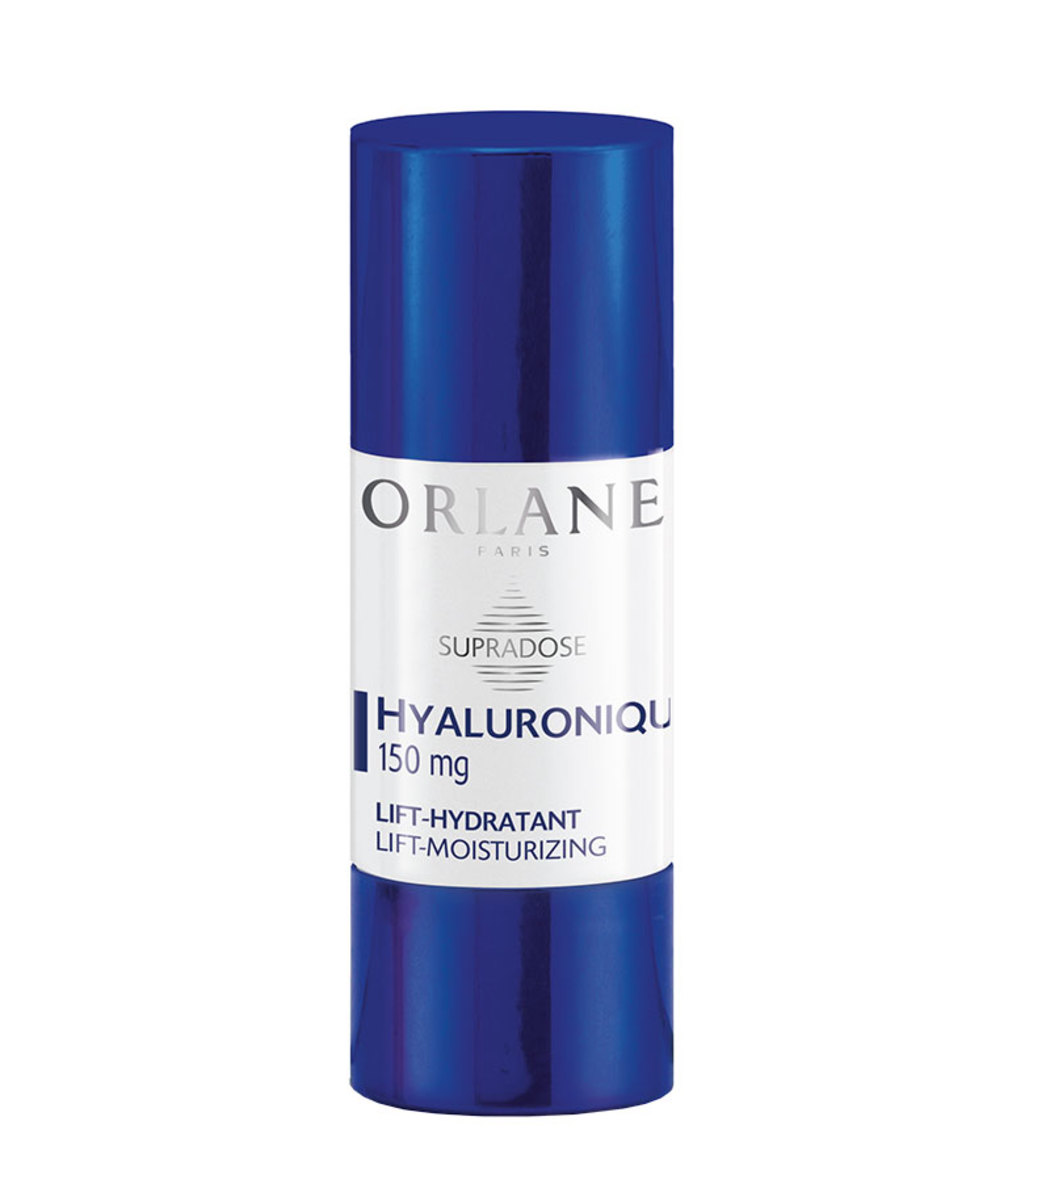 ORLANE Hyaluronique Supradose 0.5 oz.